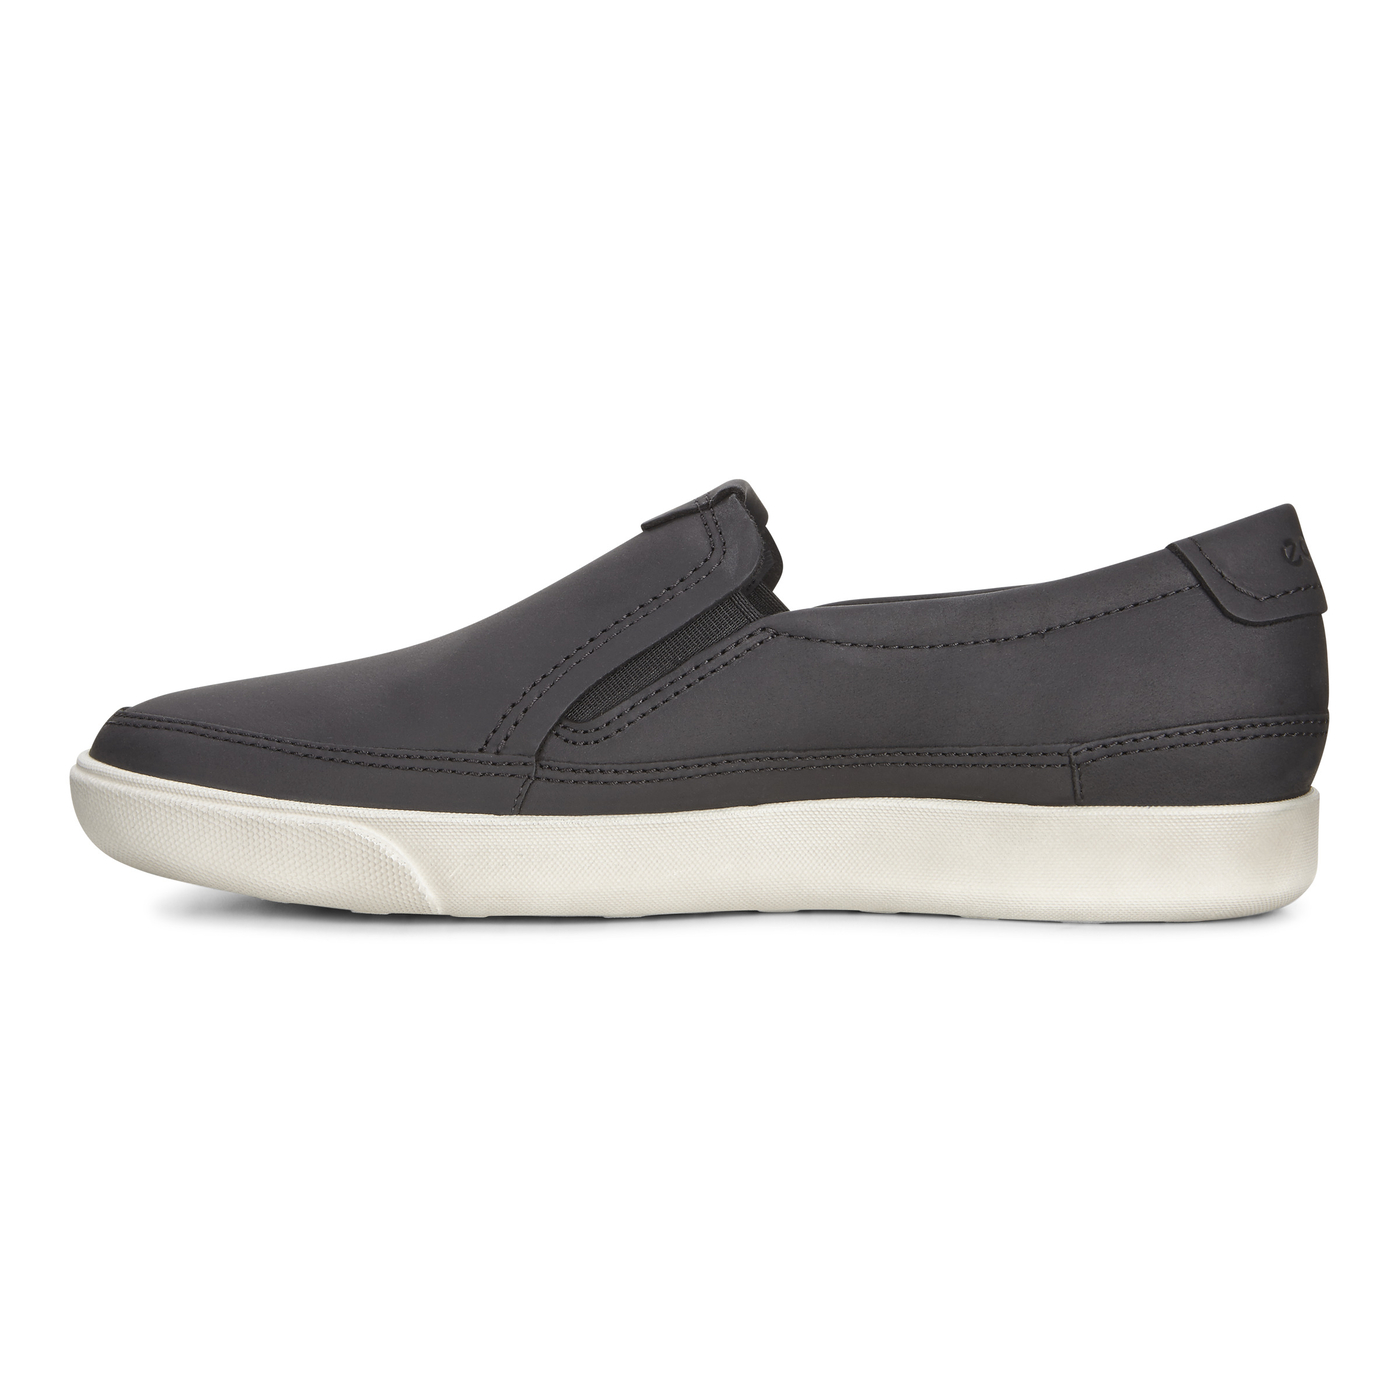 ECCO GARY Mens Casual Slip On